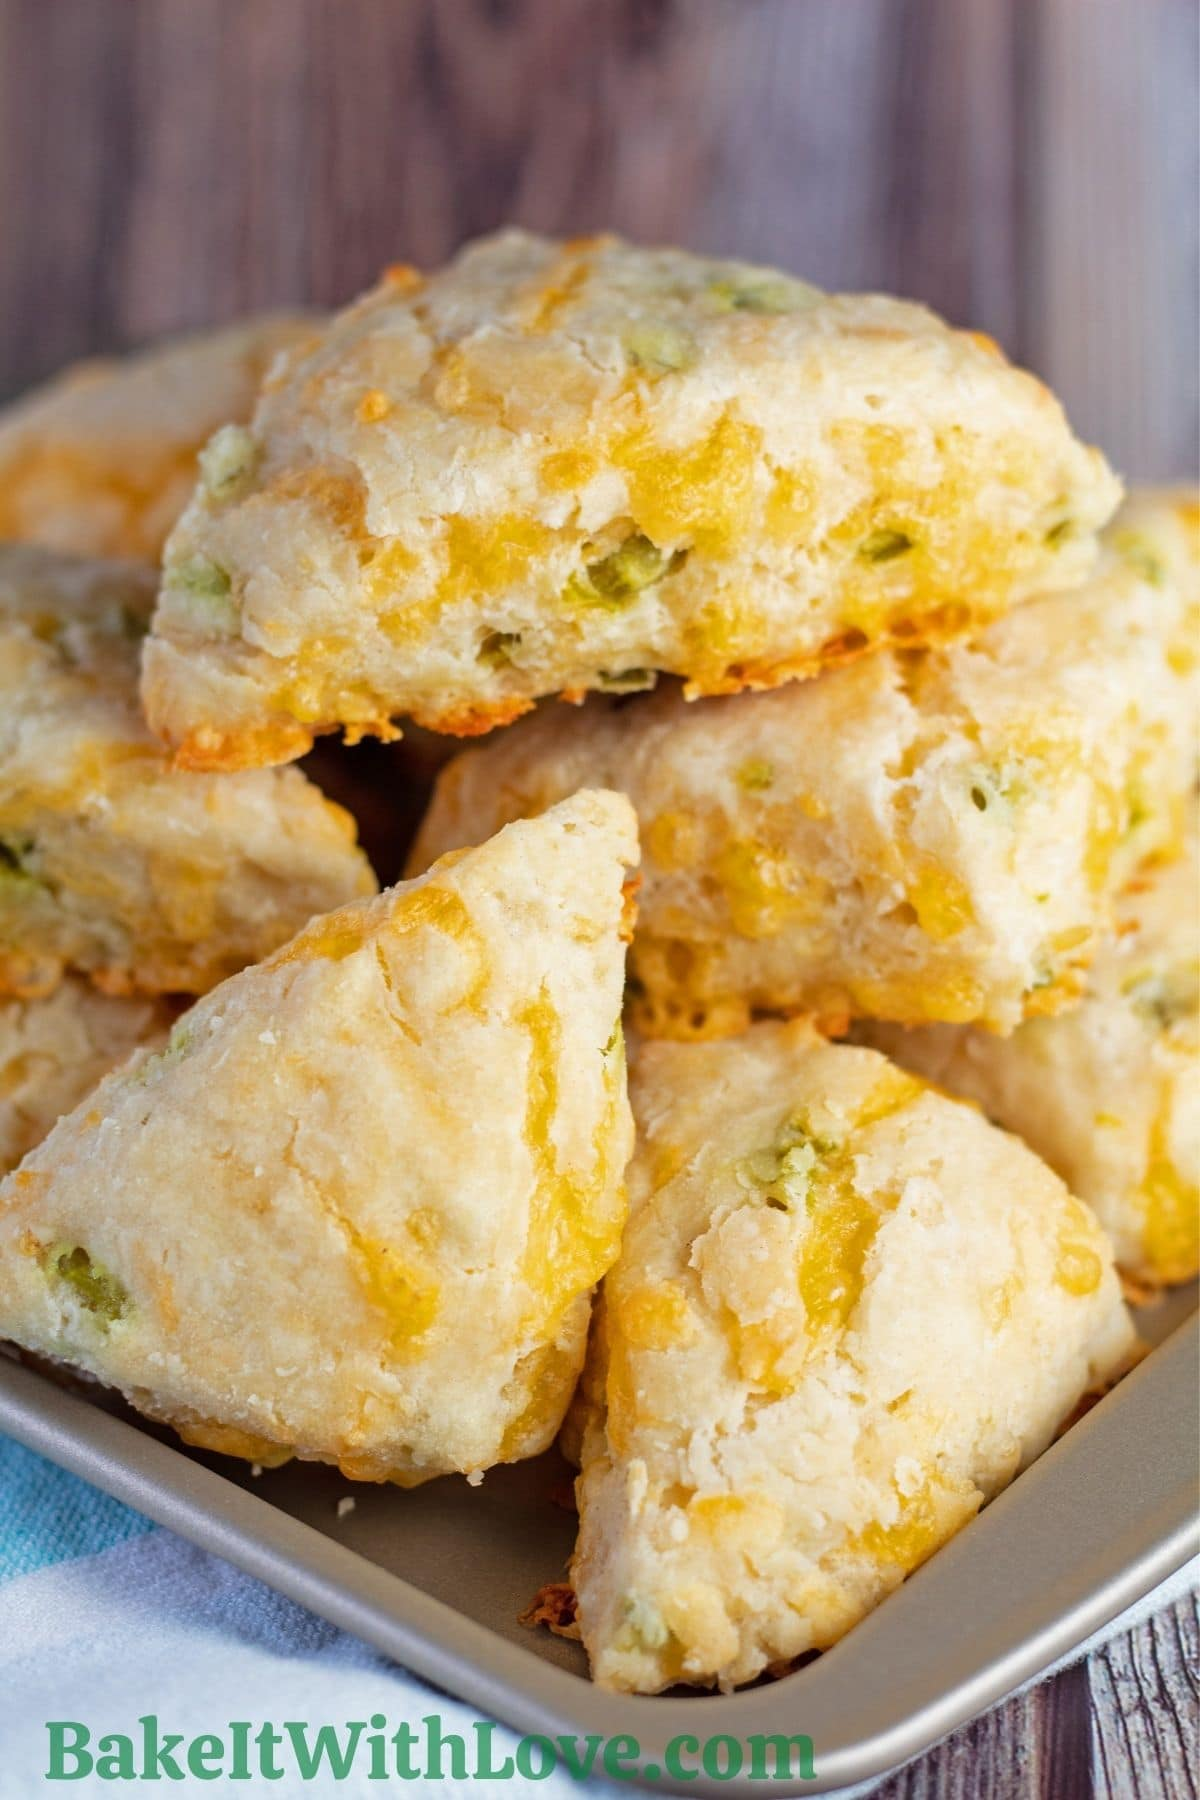 Jalapeno Cheddar Scones piled up on a baking tray with a blue and white background.